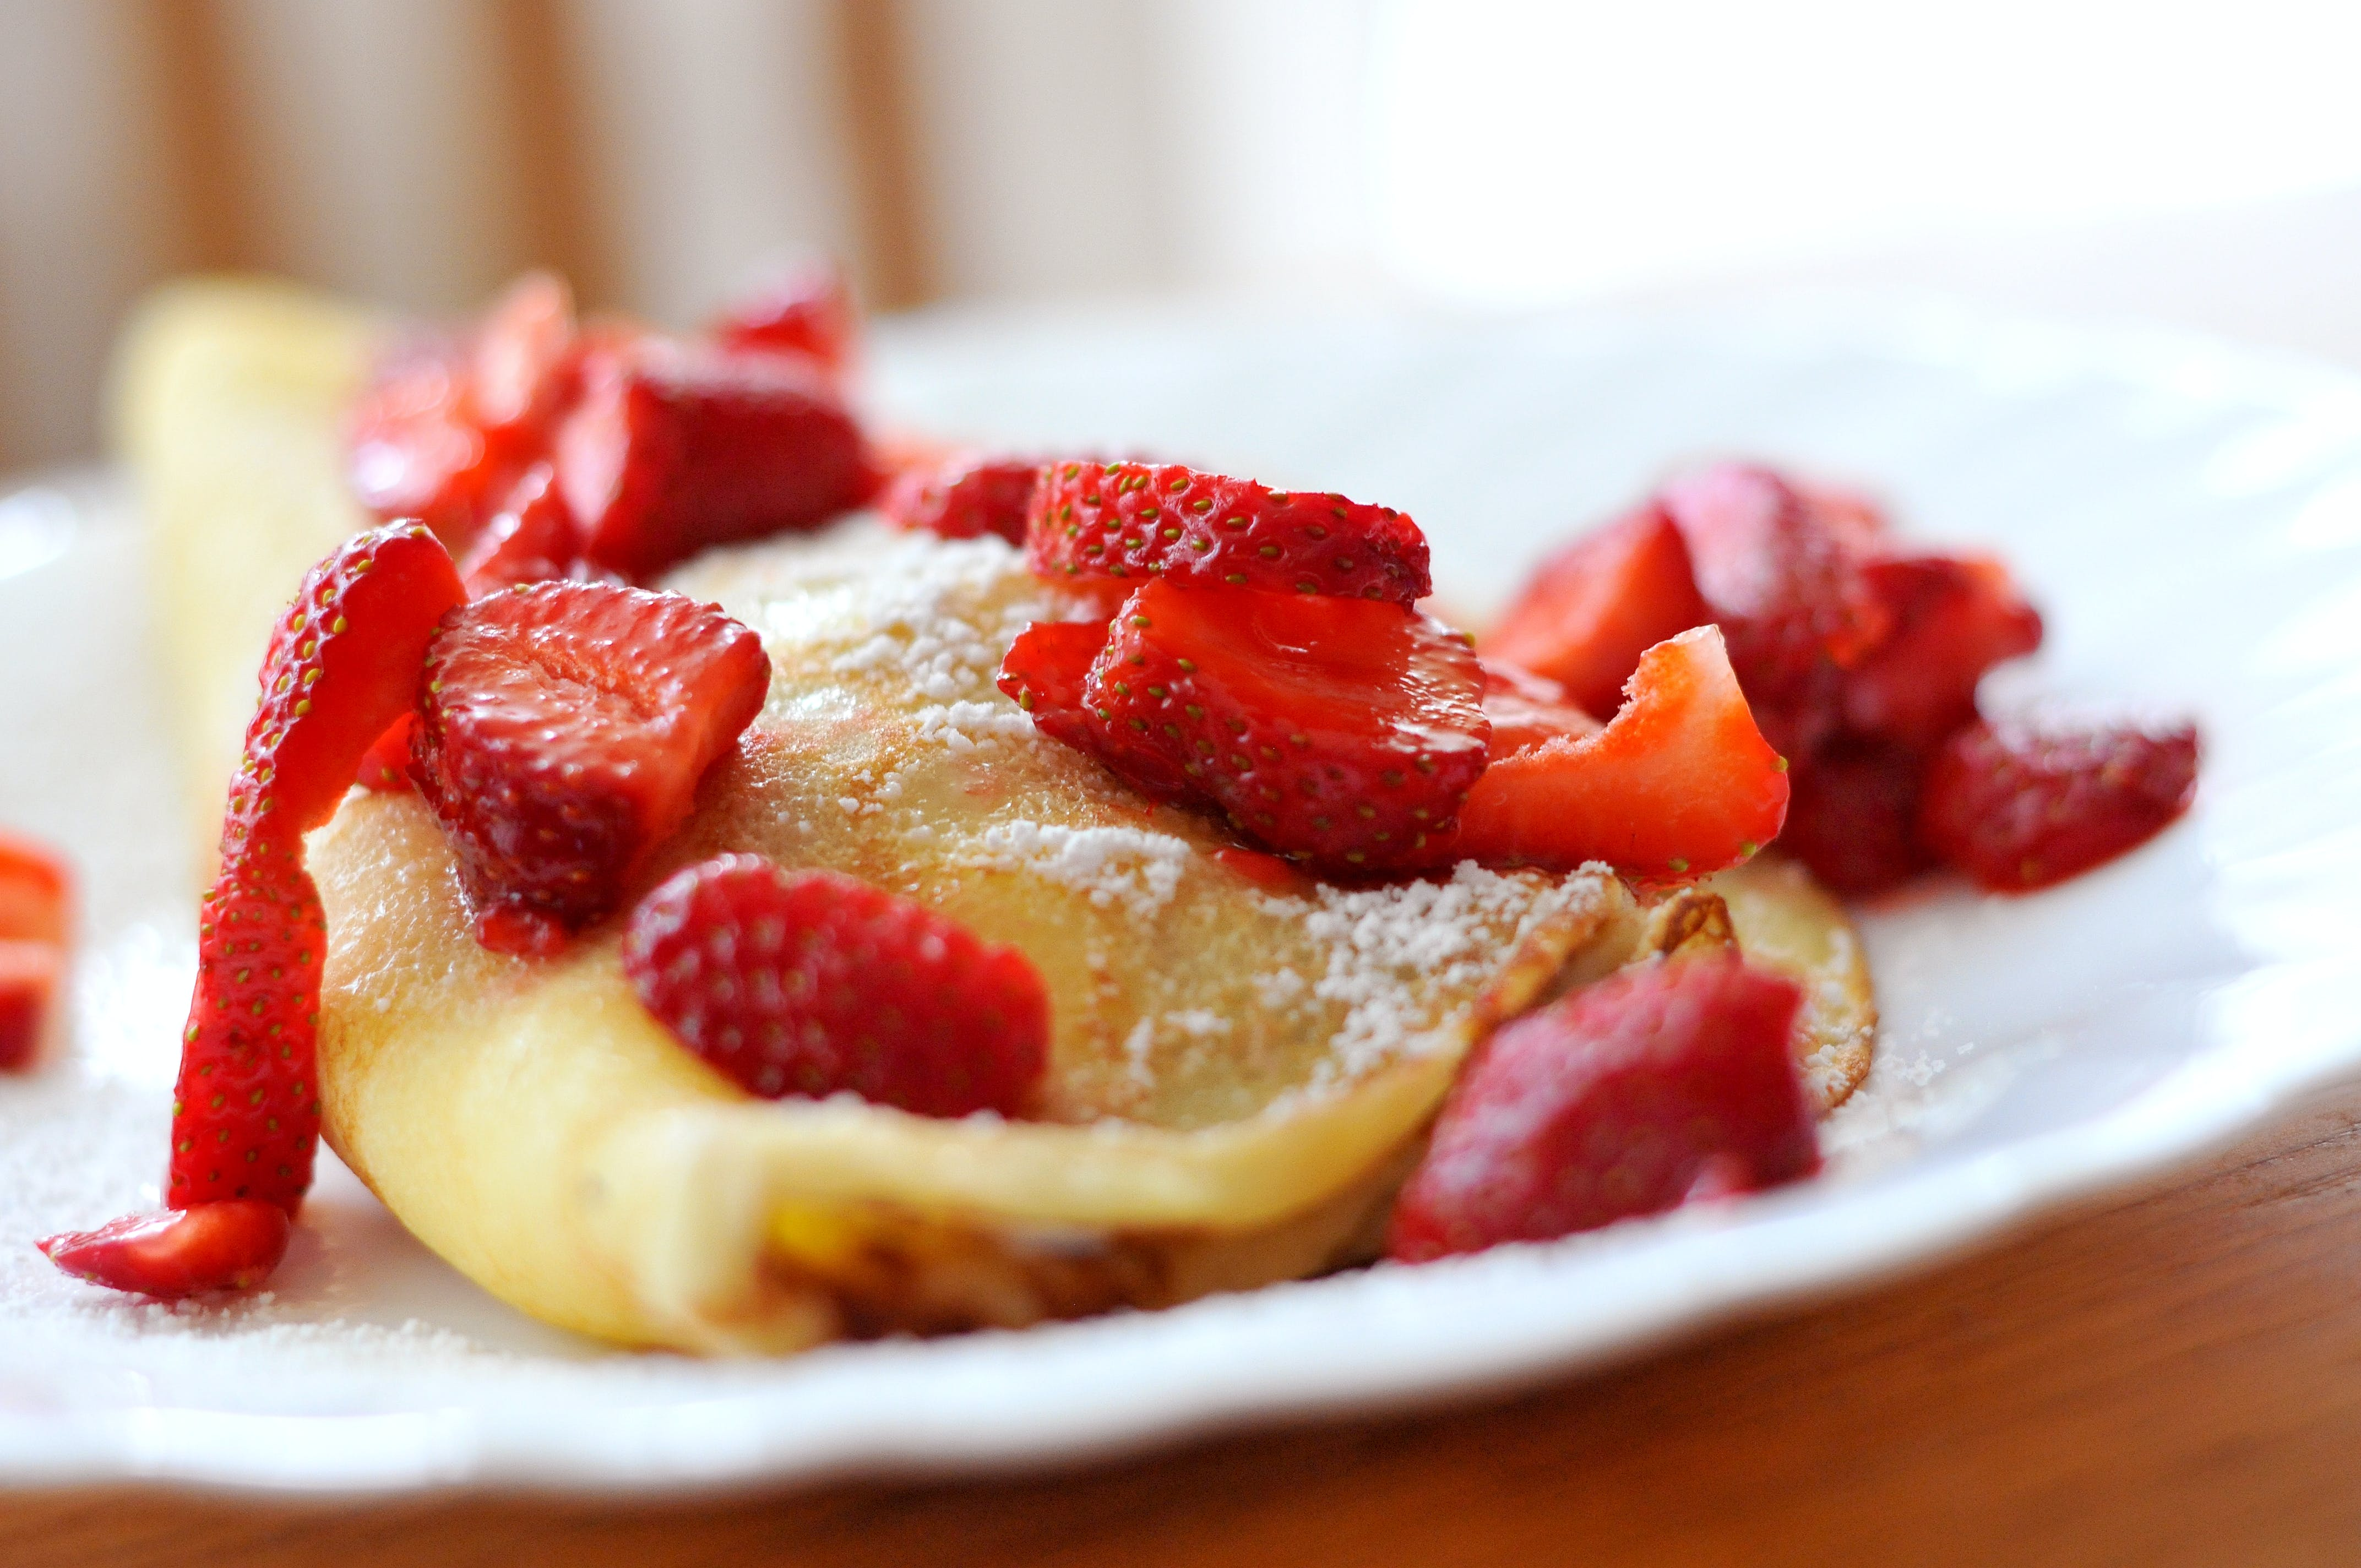 Crepe With Sliced Strawberries on Plate